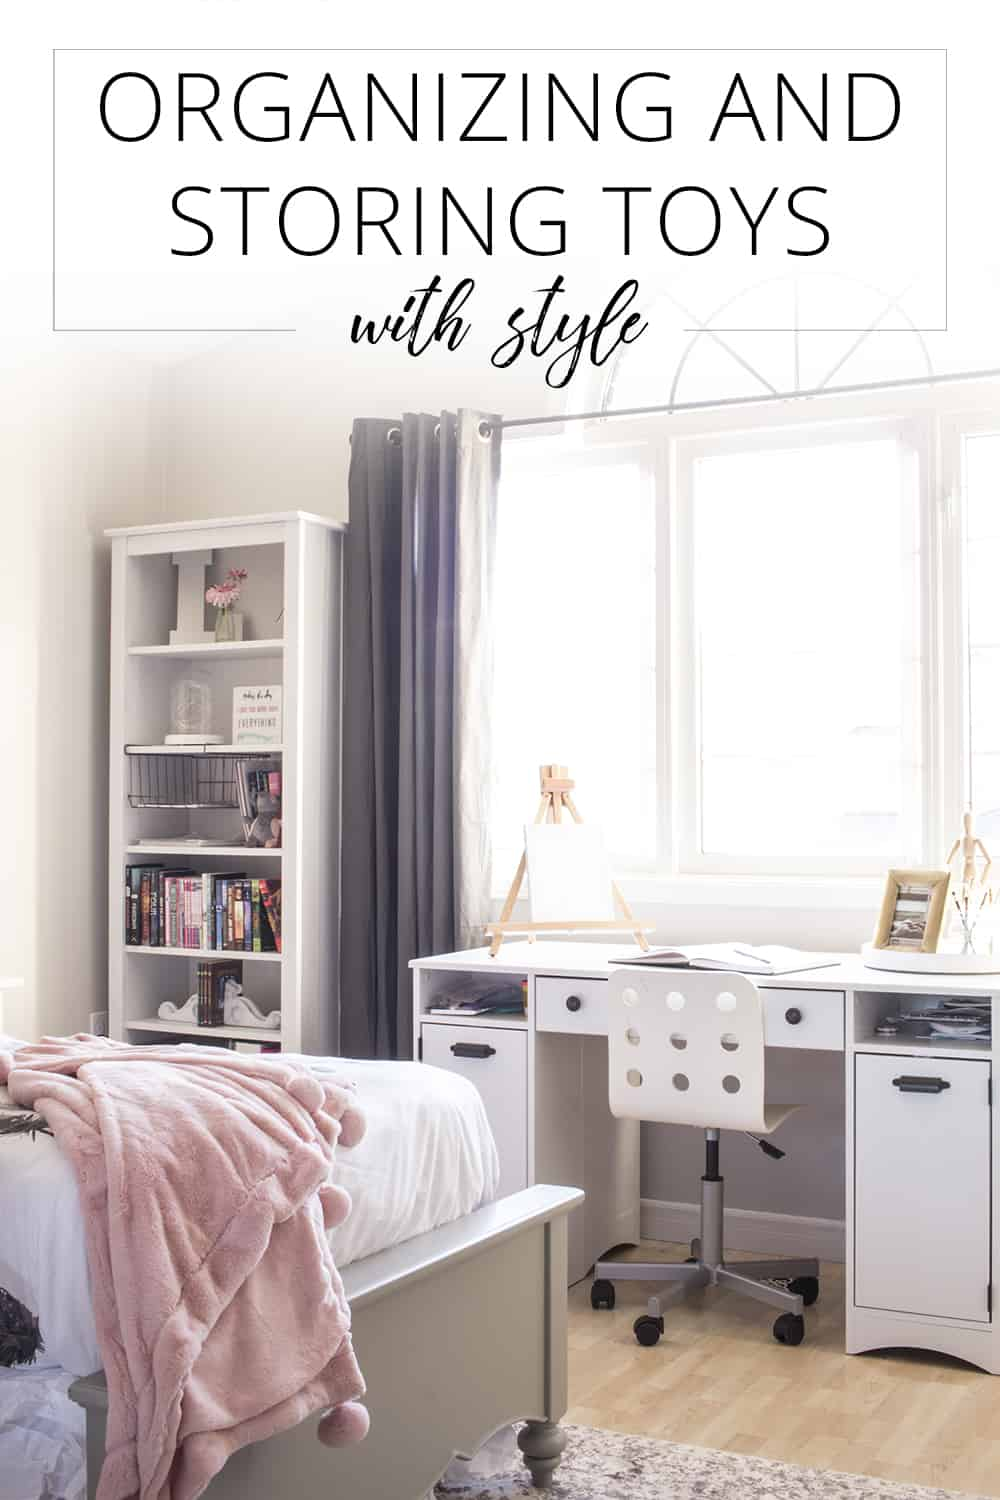 organizing and storing toys with style